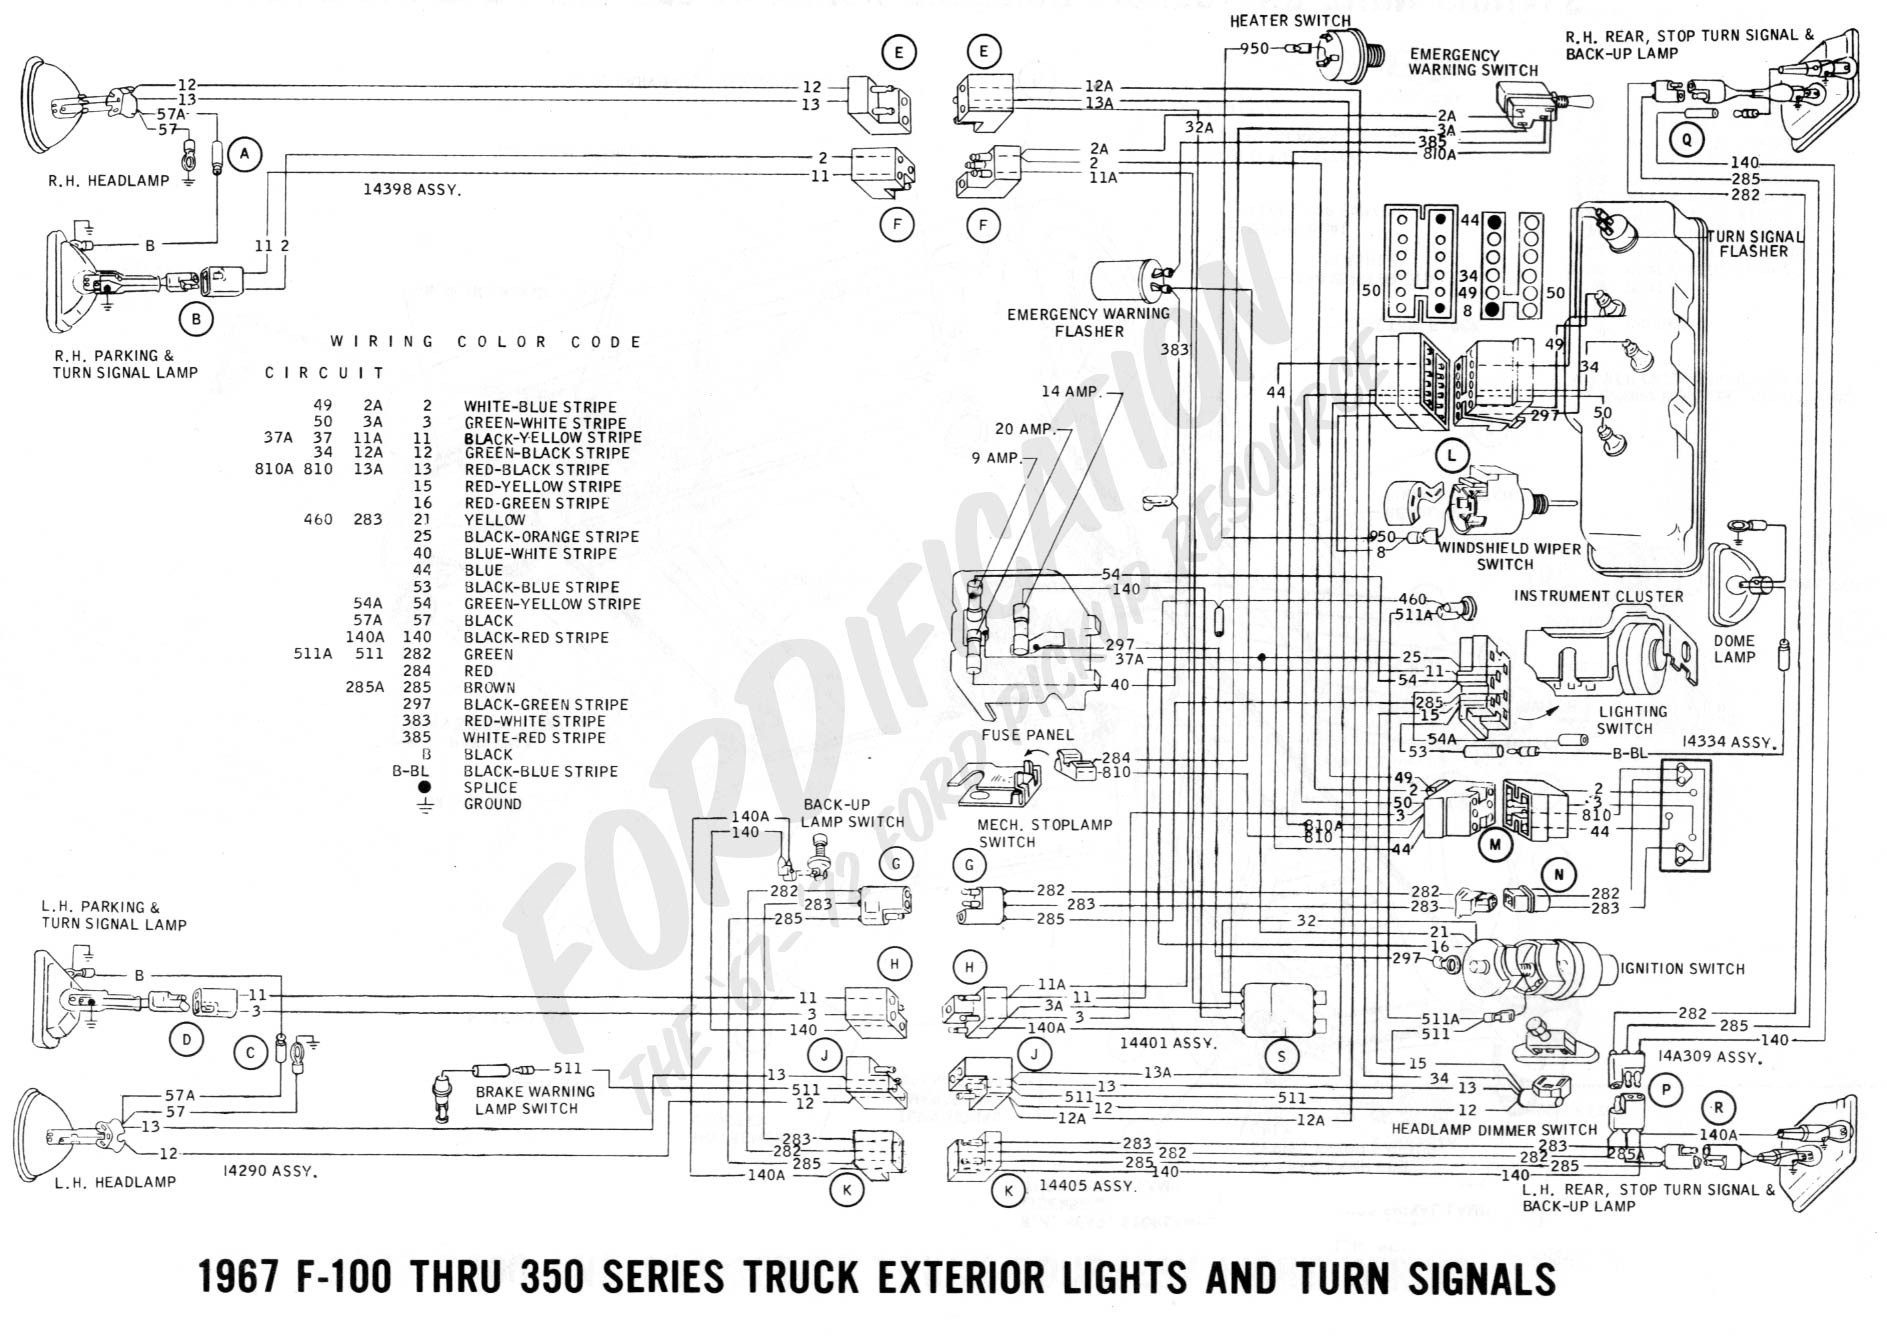 Ford F150 Wiring Harness Diagram Luxury ford Ranger Wiring Harness Diagram Diagram Of Ford F150 Wiring Harness Diagram